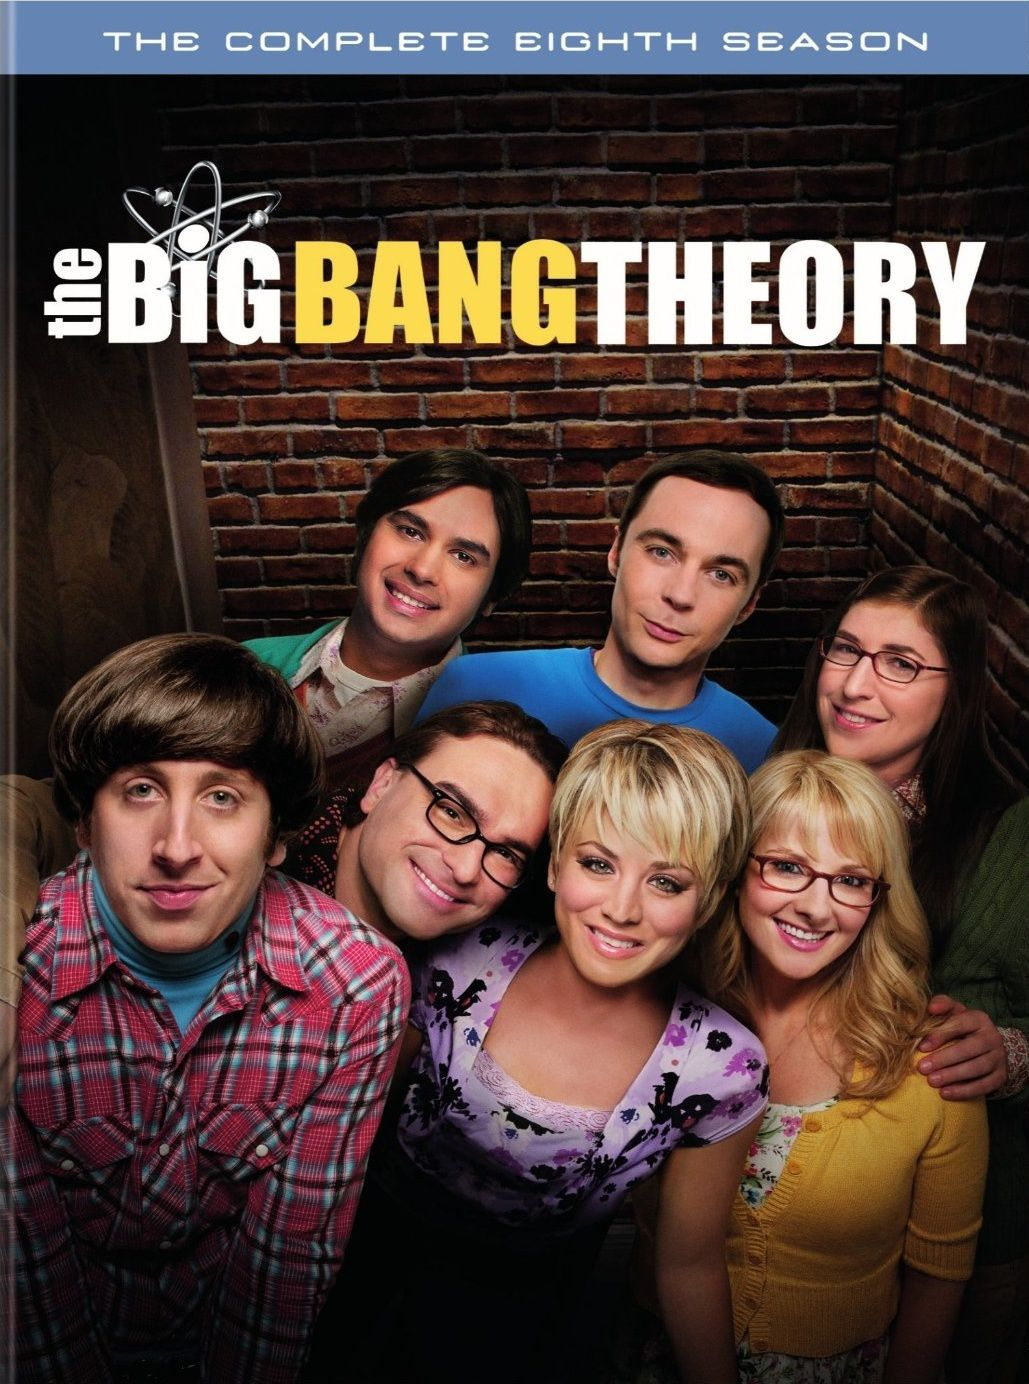 The big bang theory saison 8 en dvd/blu-ray